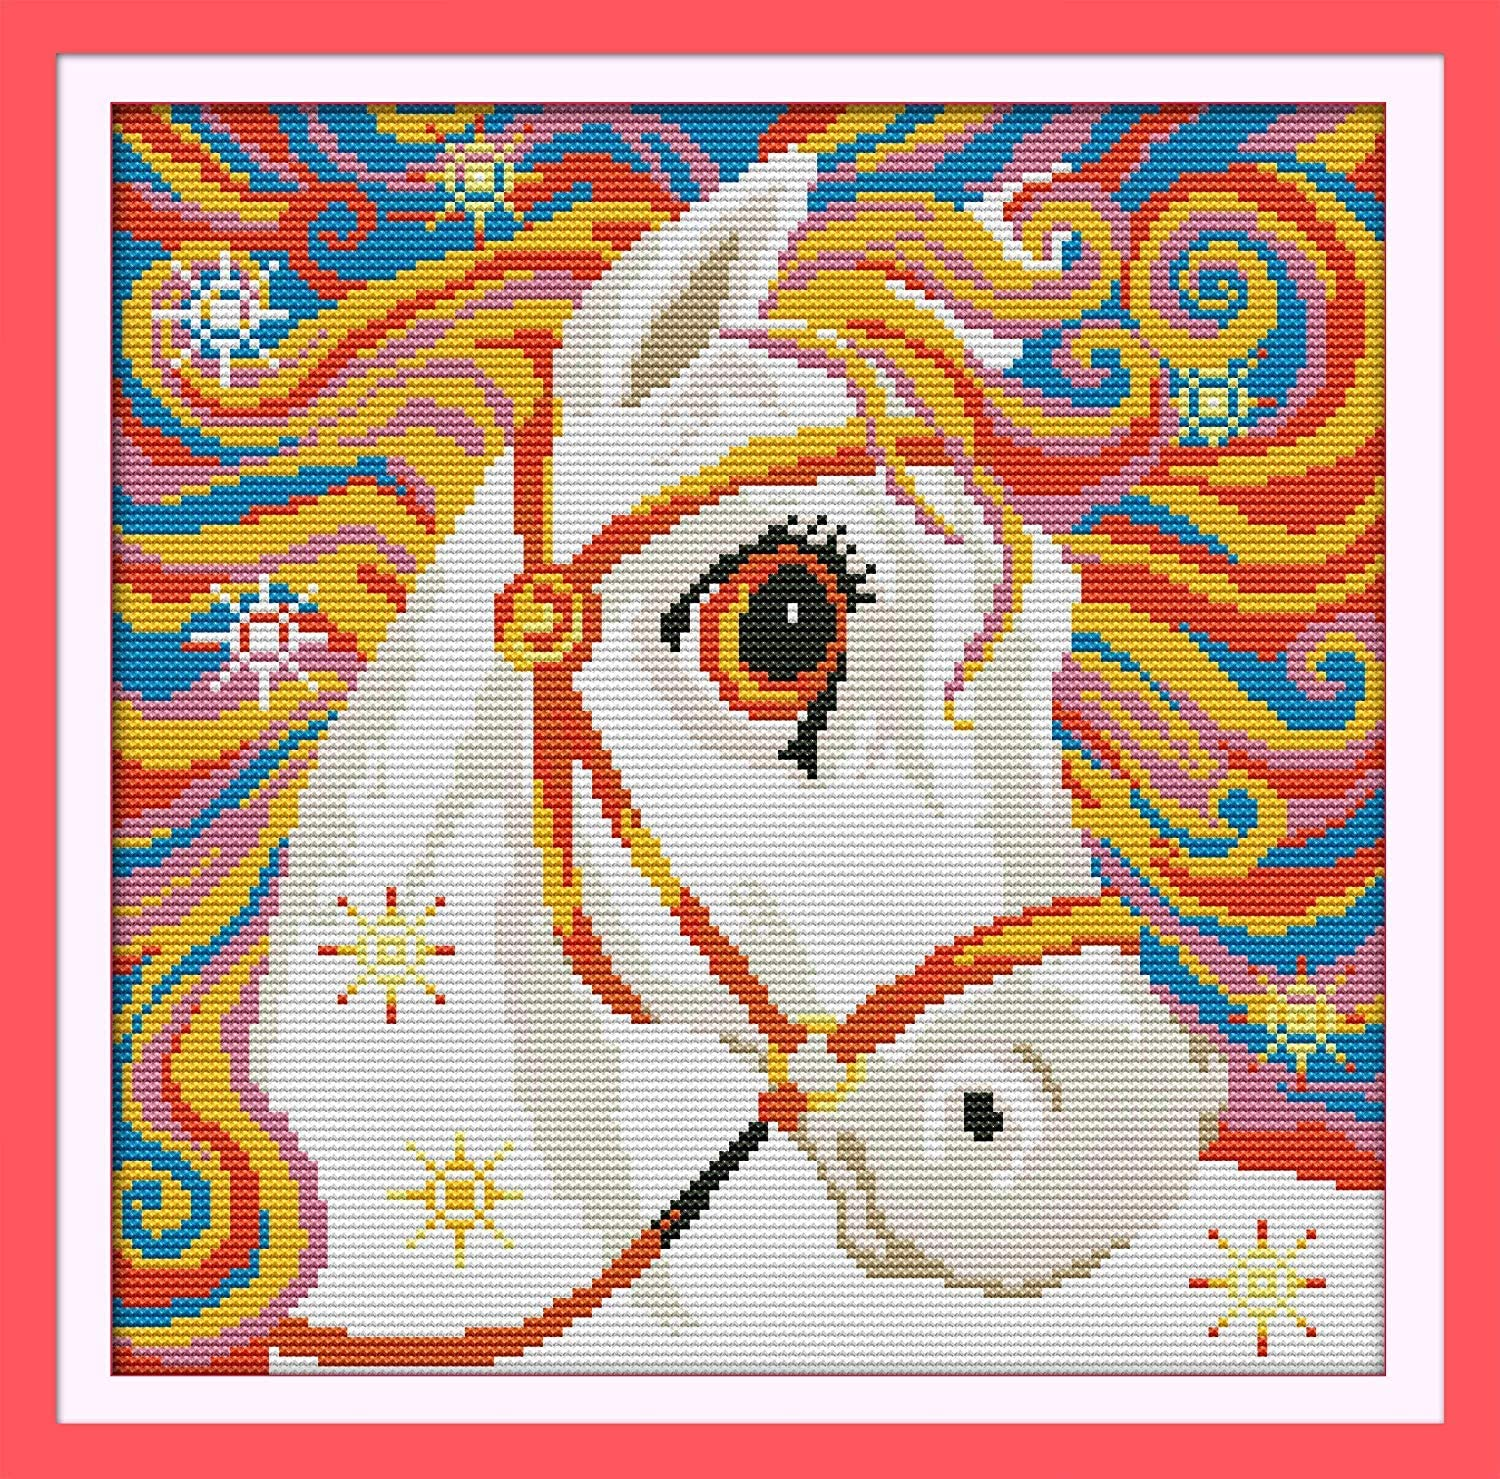 Cross Stitch Stamped Kits Quilt Pre-Printed Cross-Stitching Patterns for Beginner Kids Adults, Pre-Printed Embroidery Needlepoint Starter Kits Rainbow Horse for Home Decorations